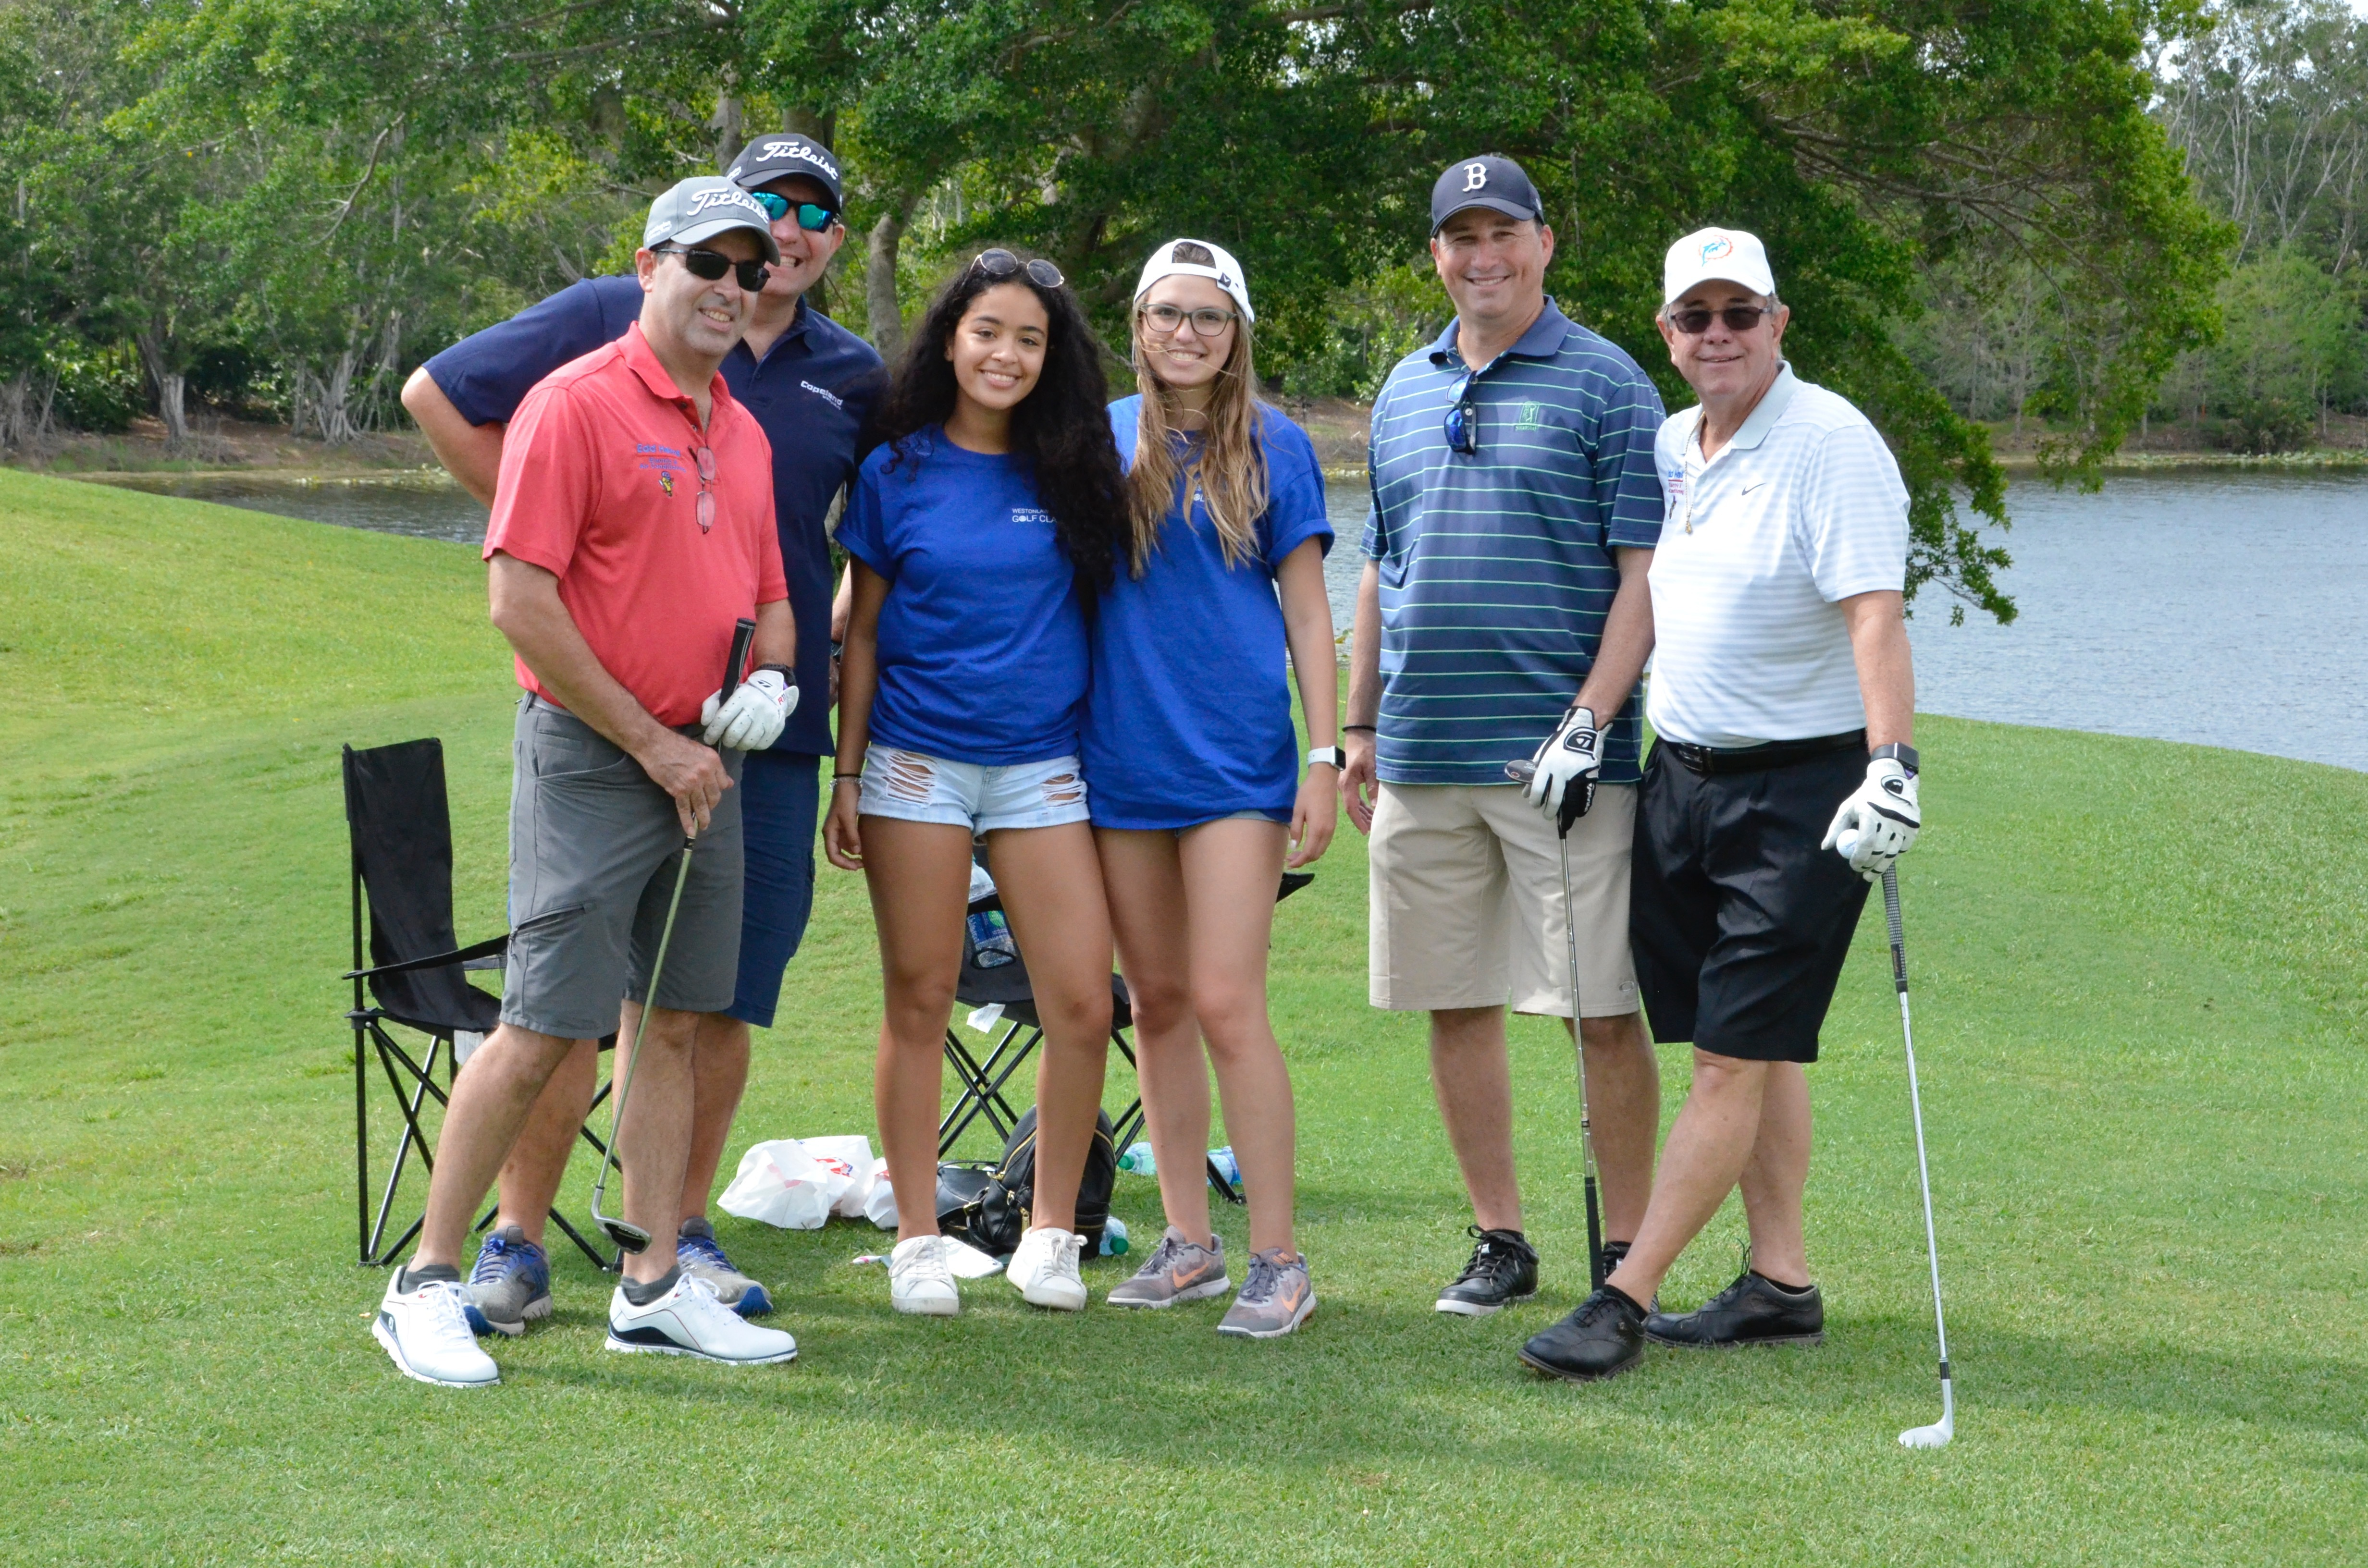 33rd Annual Rotary Golf Classic Sponsored by FHVLEGAL.COM gallery image #43